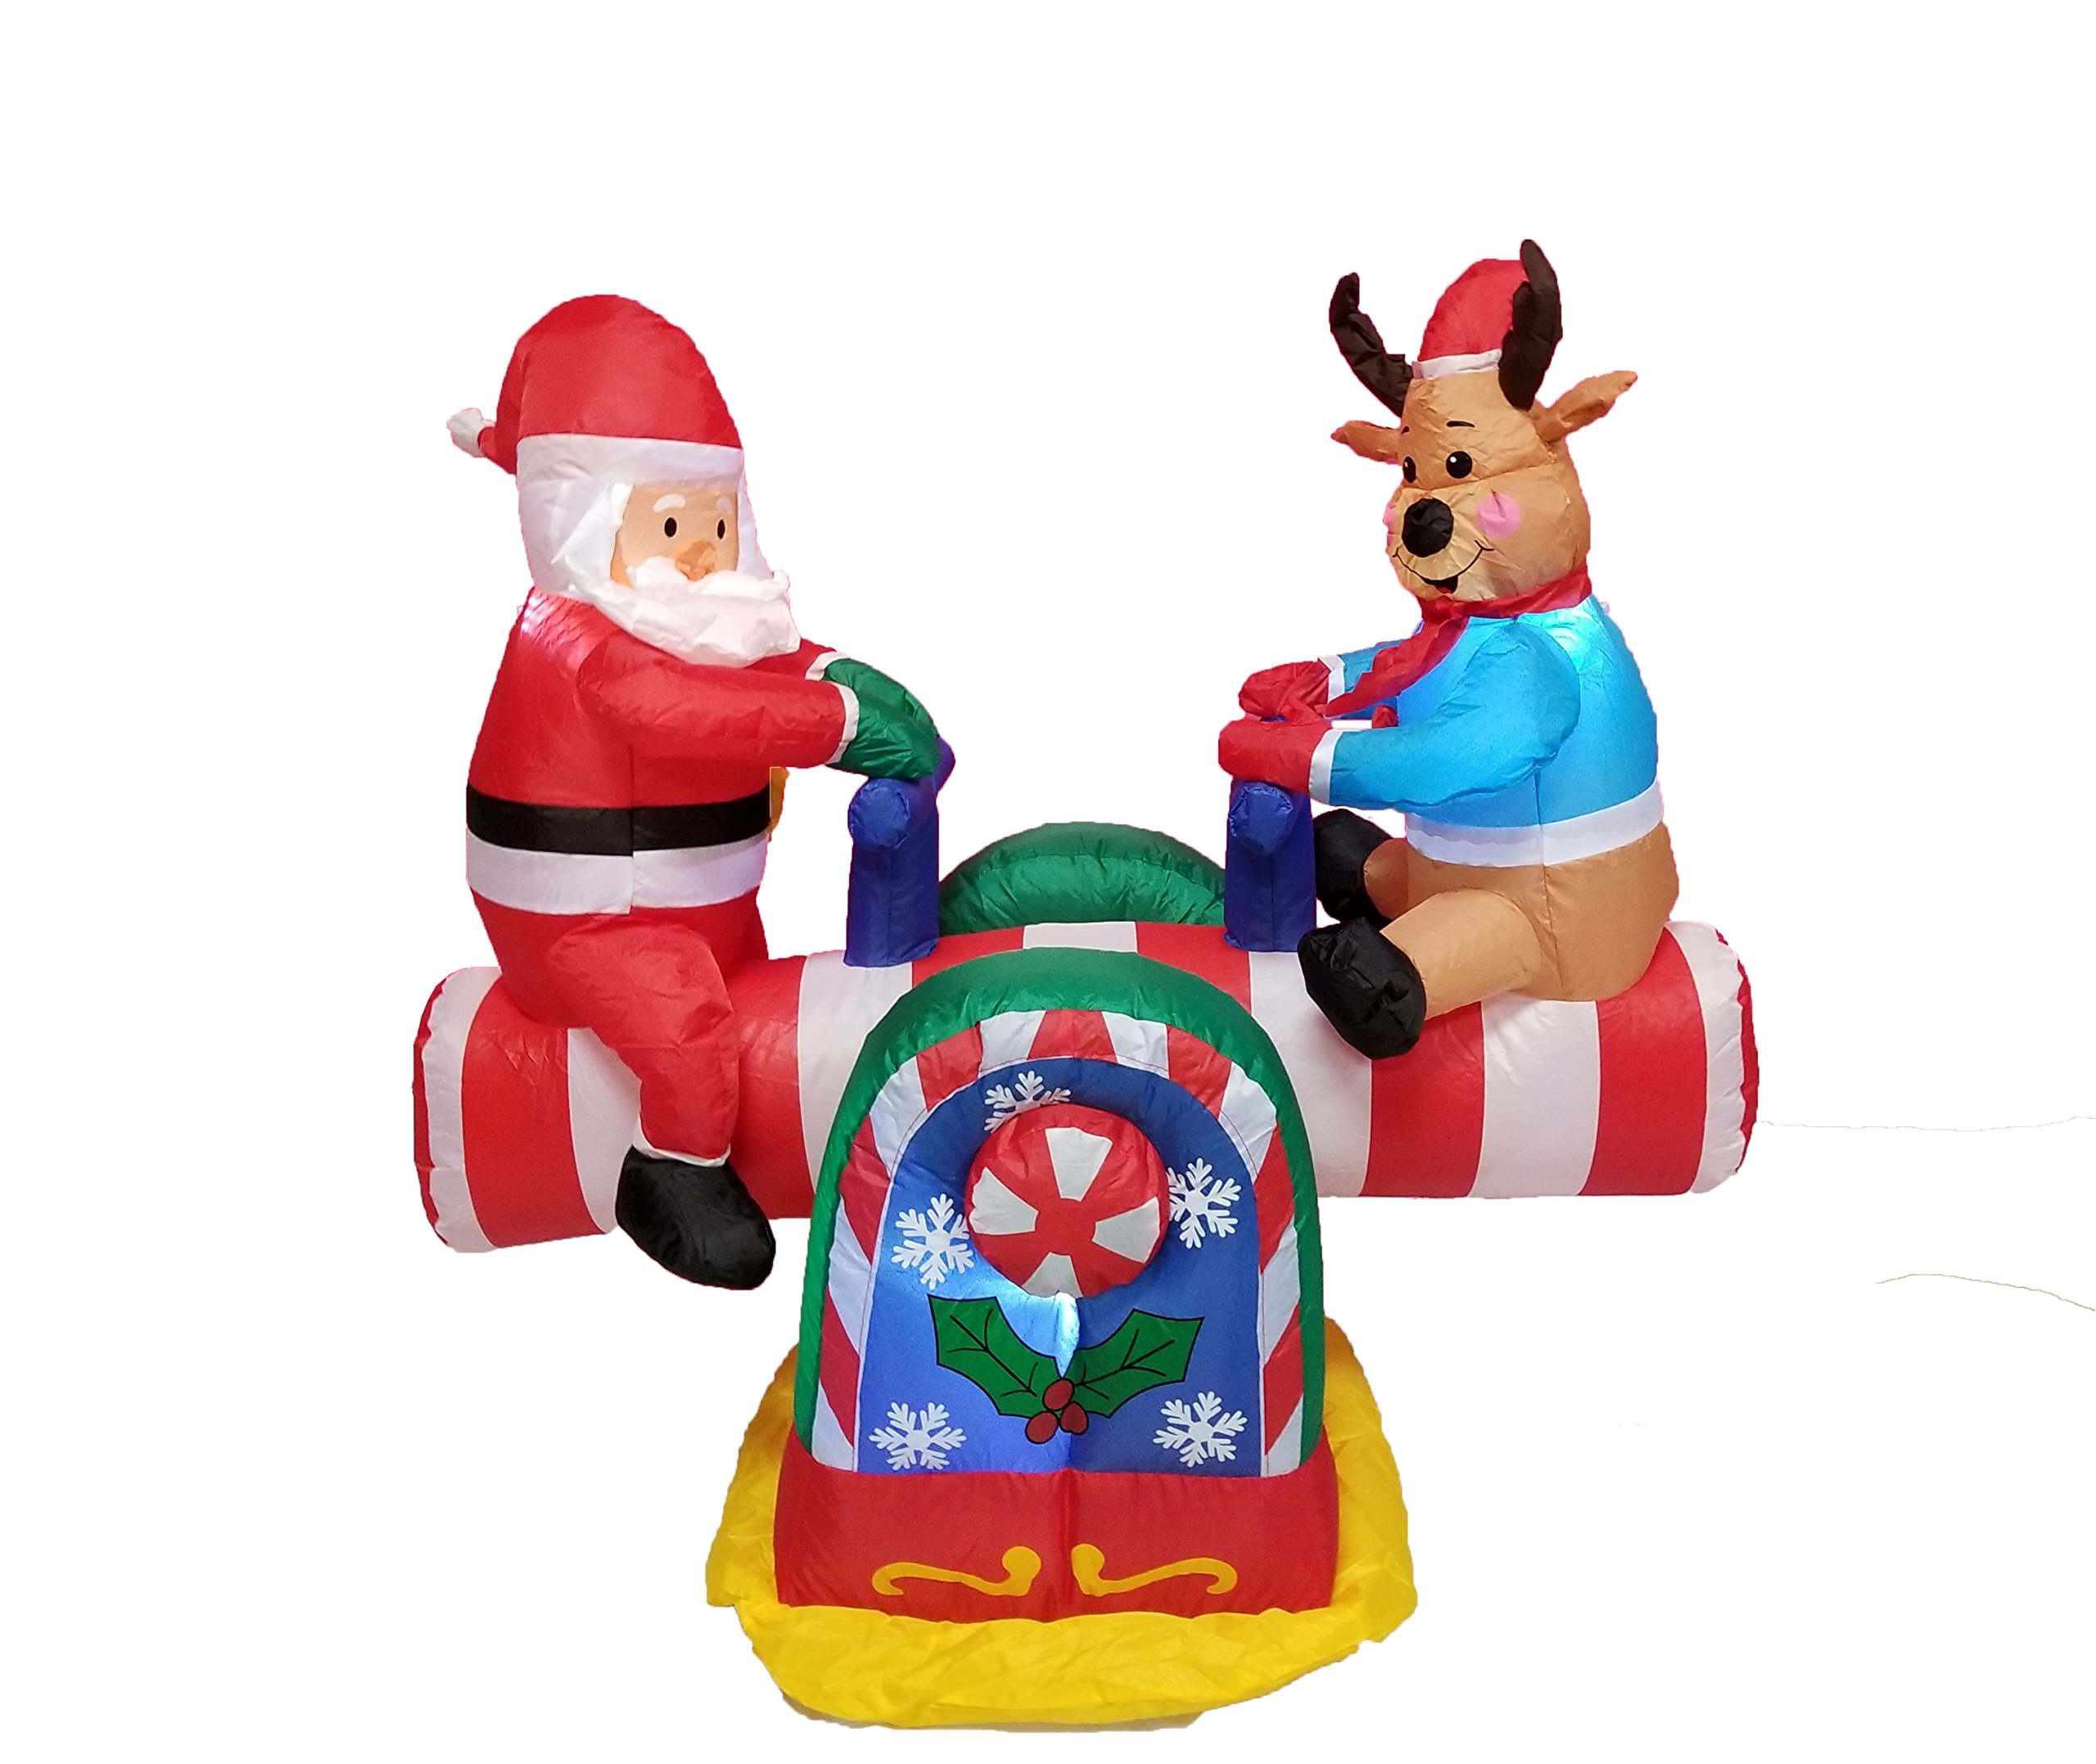 Amazon Com Bzb Goods 4 Foot Animated Christmas Inflatable Santa Claus And Reindeer On Teeter Totter Outdoor Yard Decoration Home Kitchen